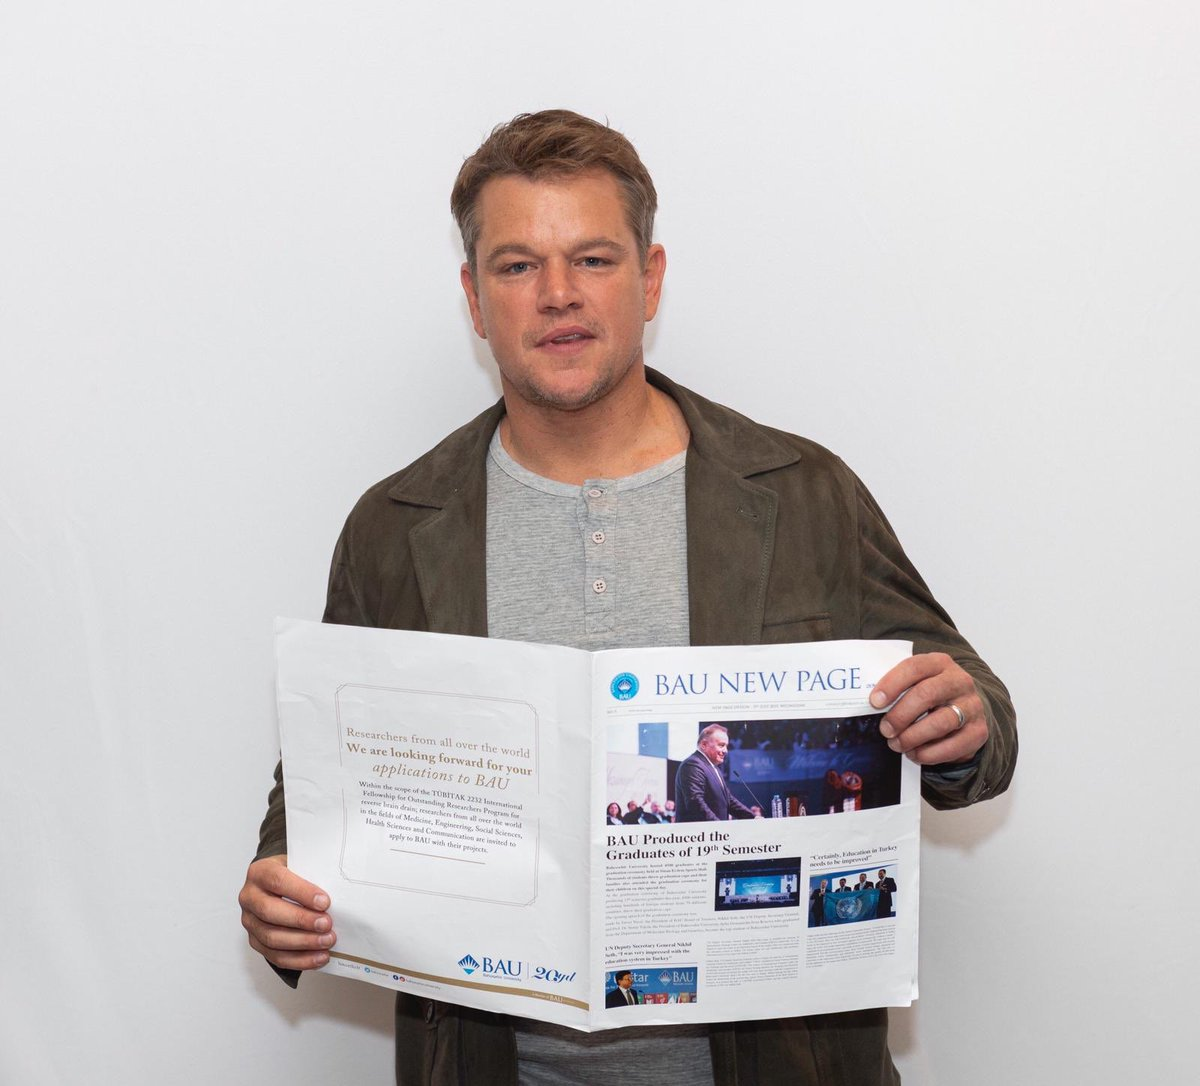 Bahçeşehir University is proud to announce that Matt Damon is interviewed by Barbaros Tapan for BAU Newspaper. https://t.co/RcUFxINtwK